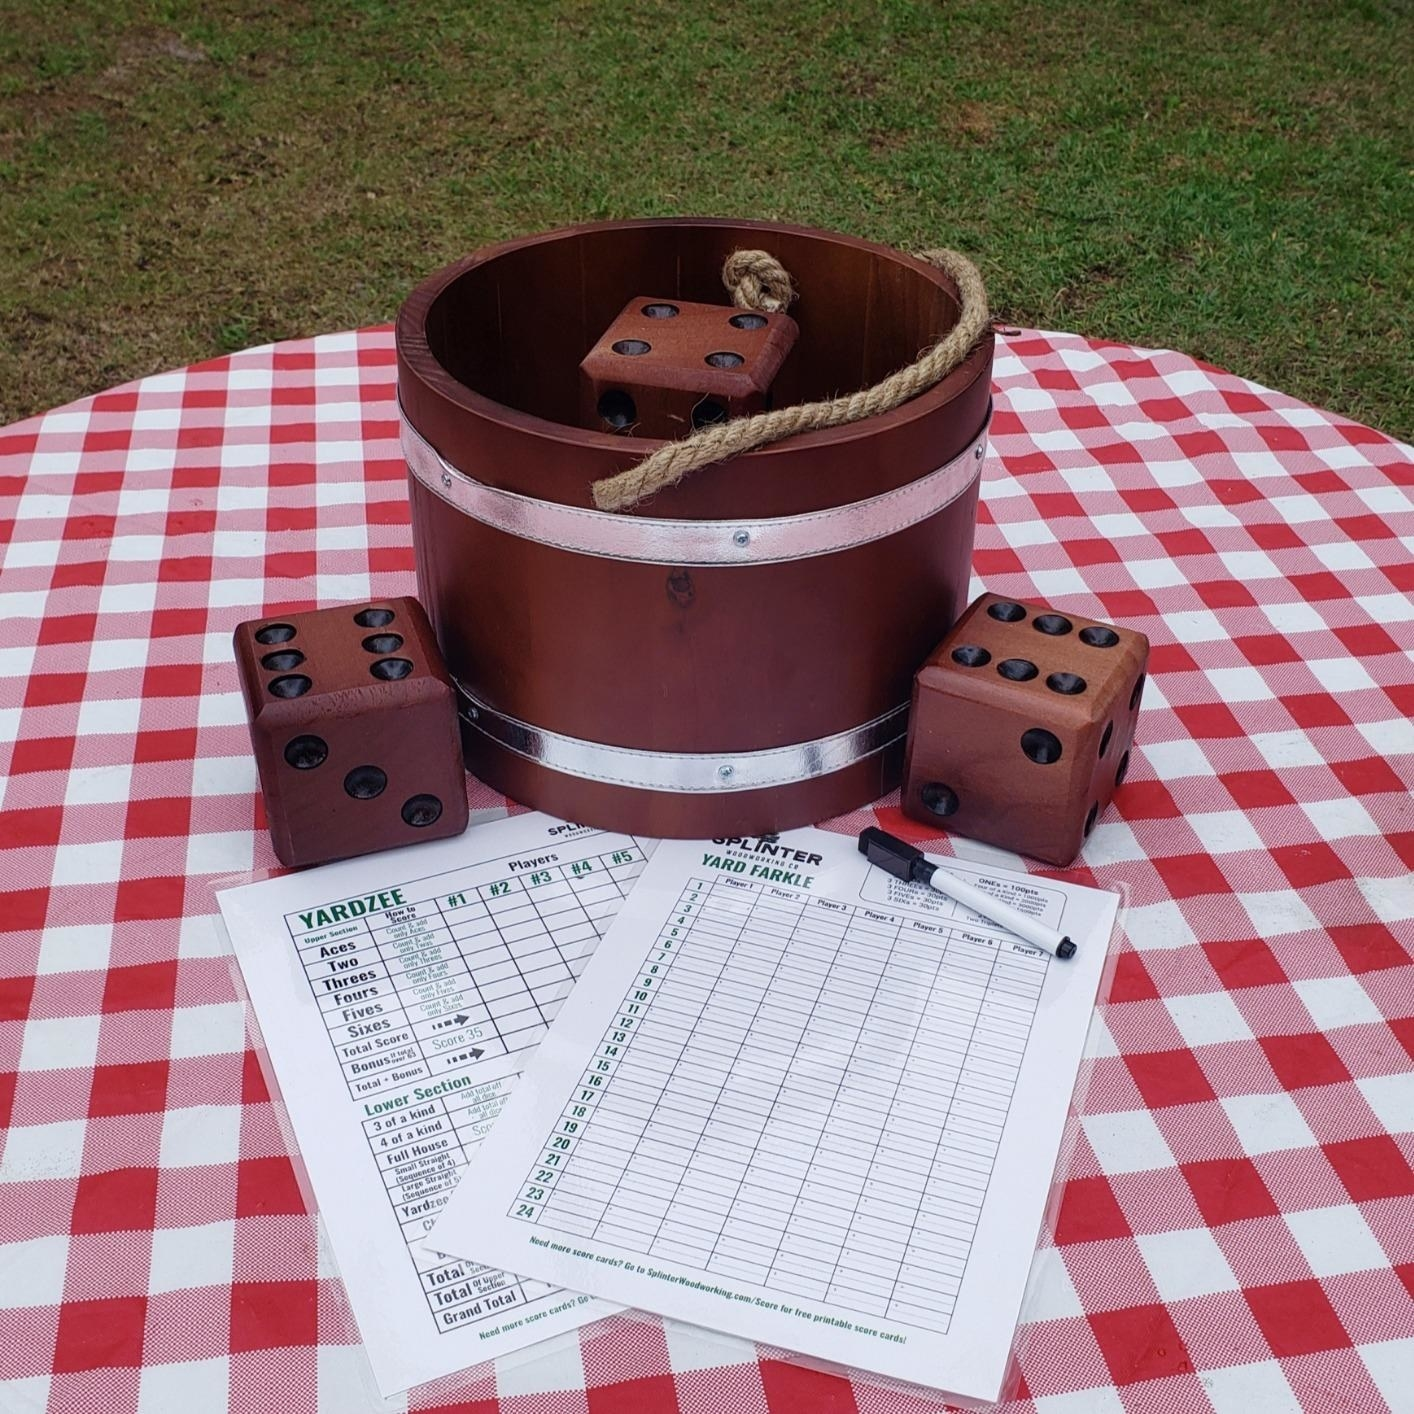 reviewer image of the giant dice, wooden bucket and score cards on a red gingham blanket outside